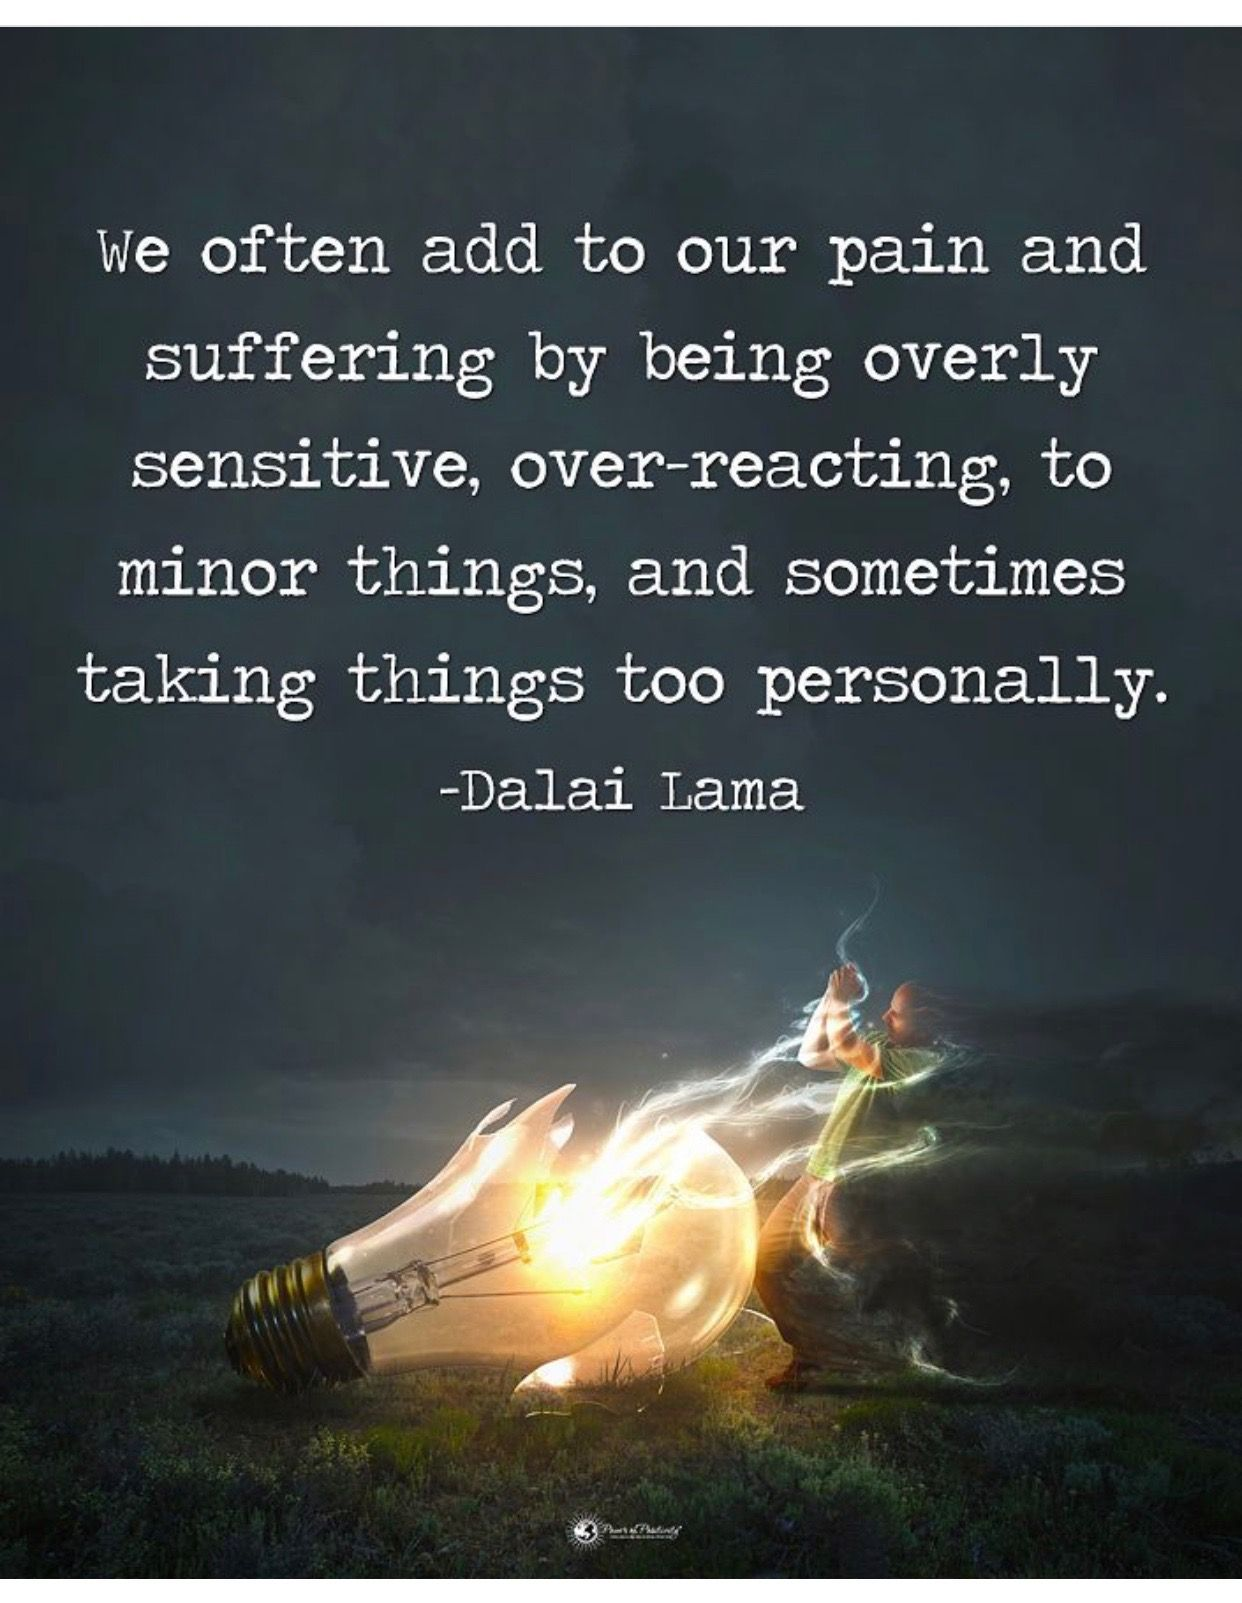 Pin By Maryanne Hodges On Thoughts Or Things To Ponder Pinterest